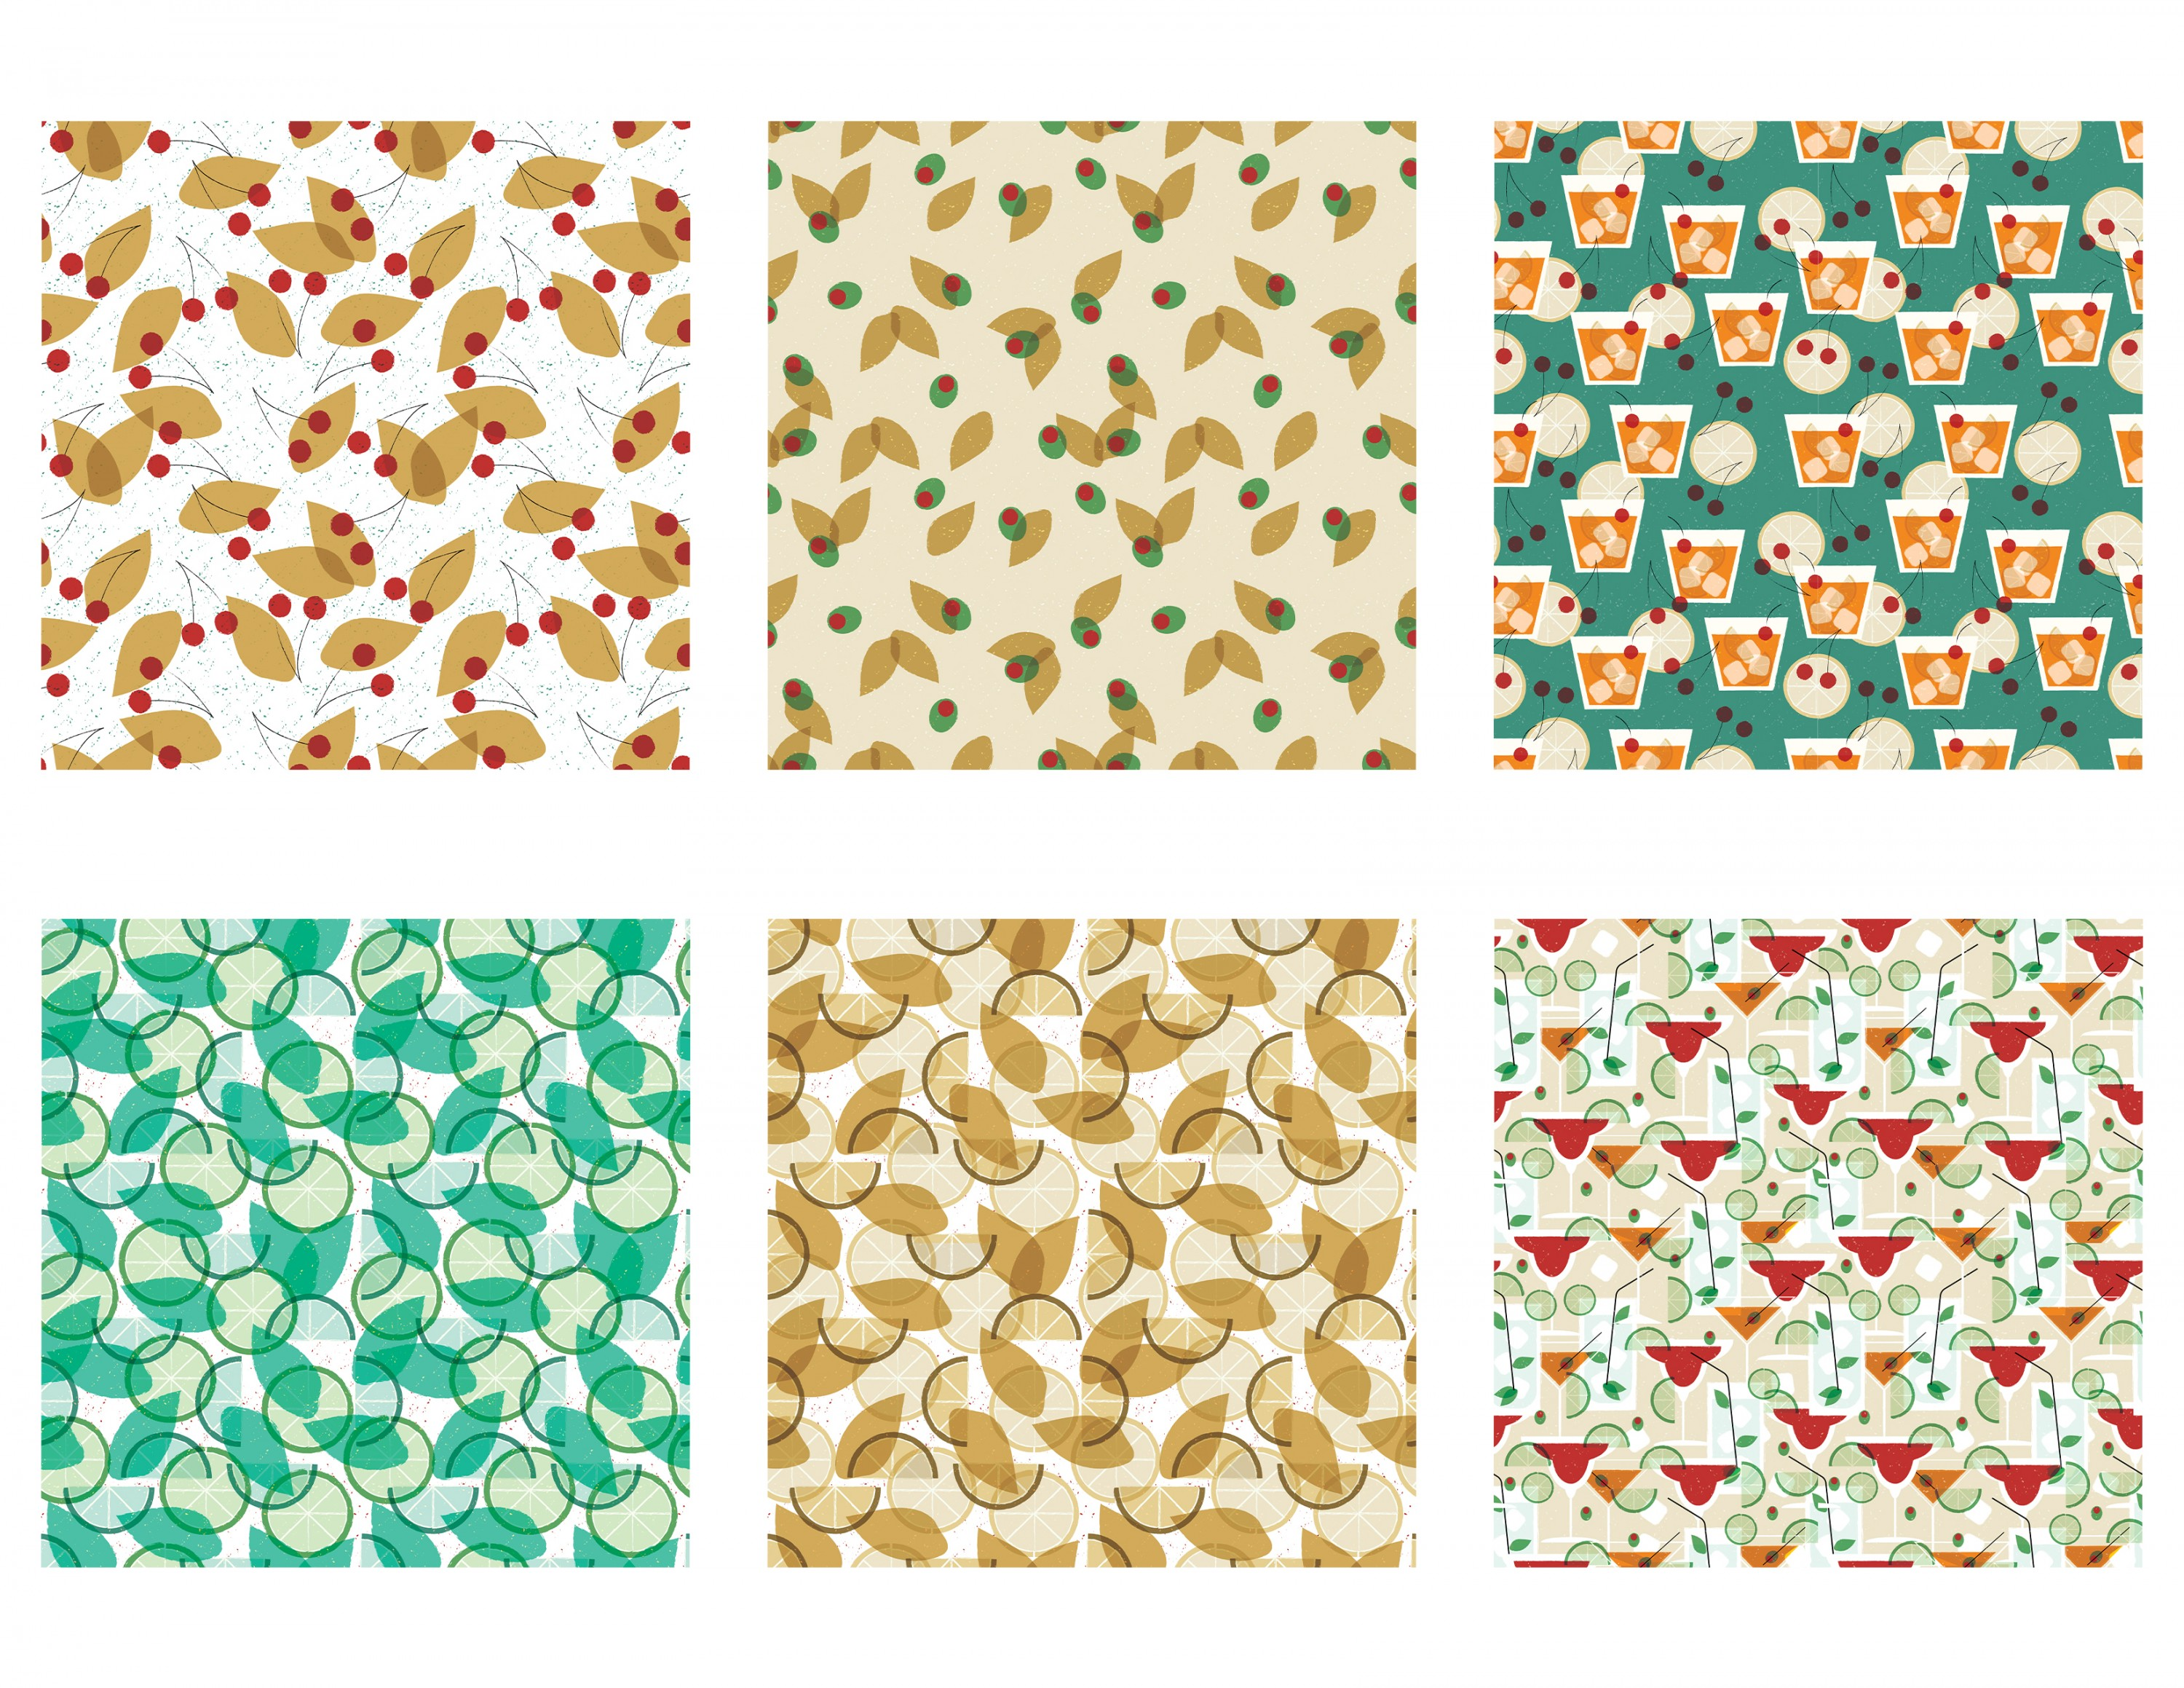 Pattern collection showing cocktail drinks.